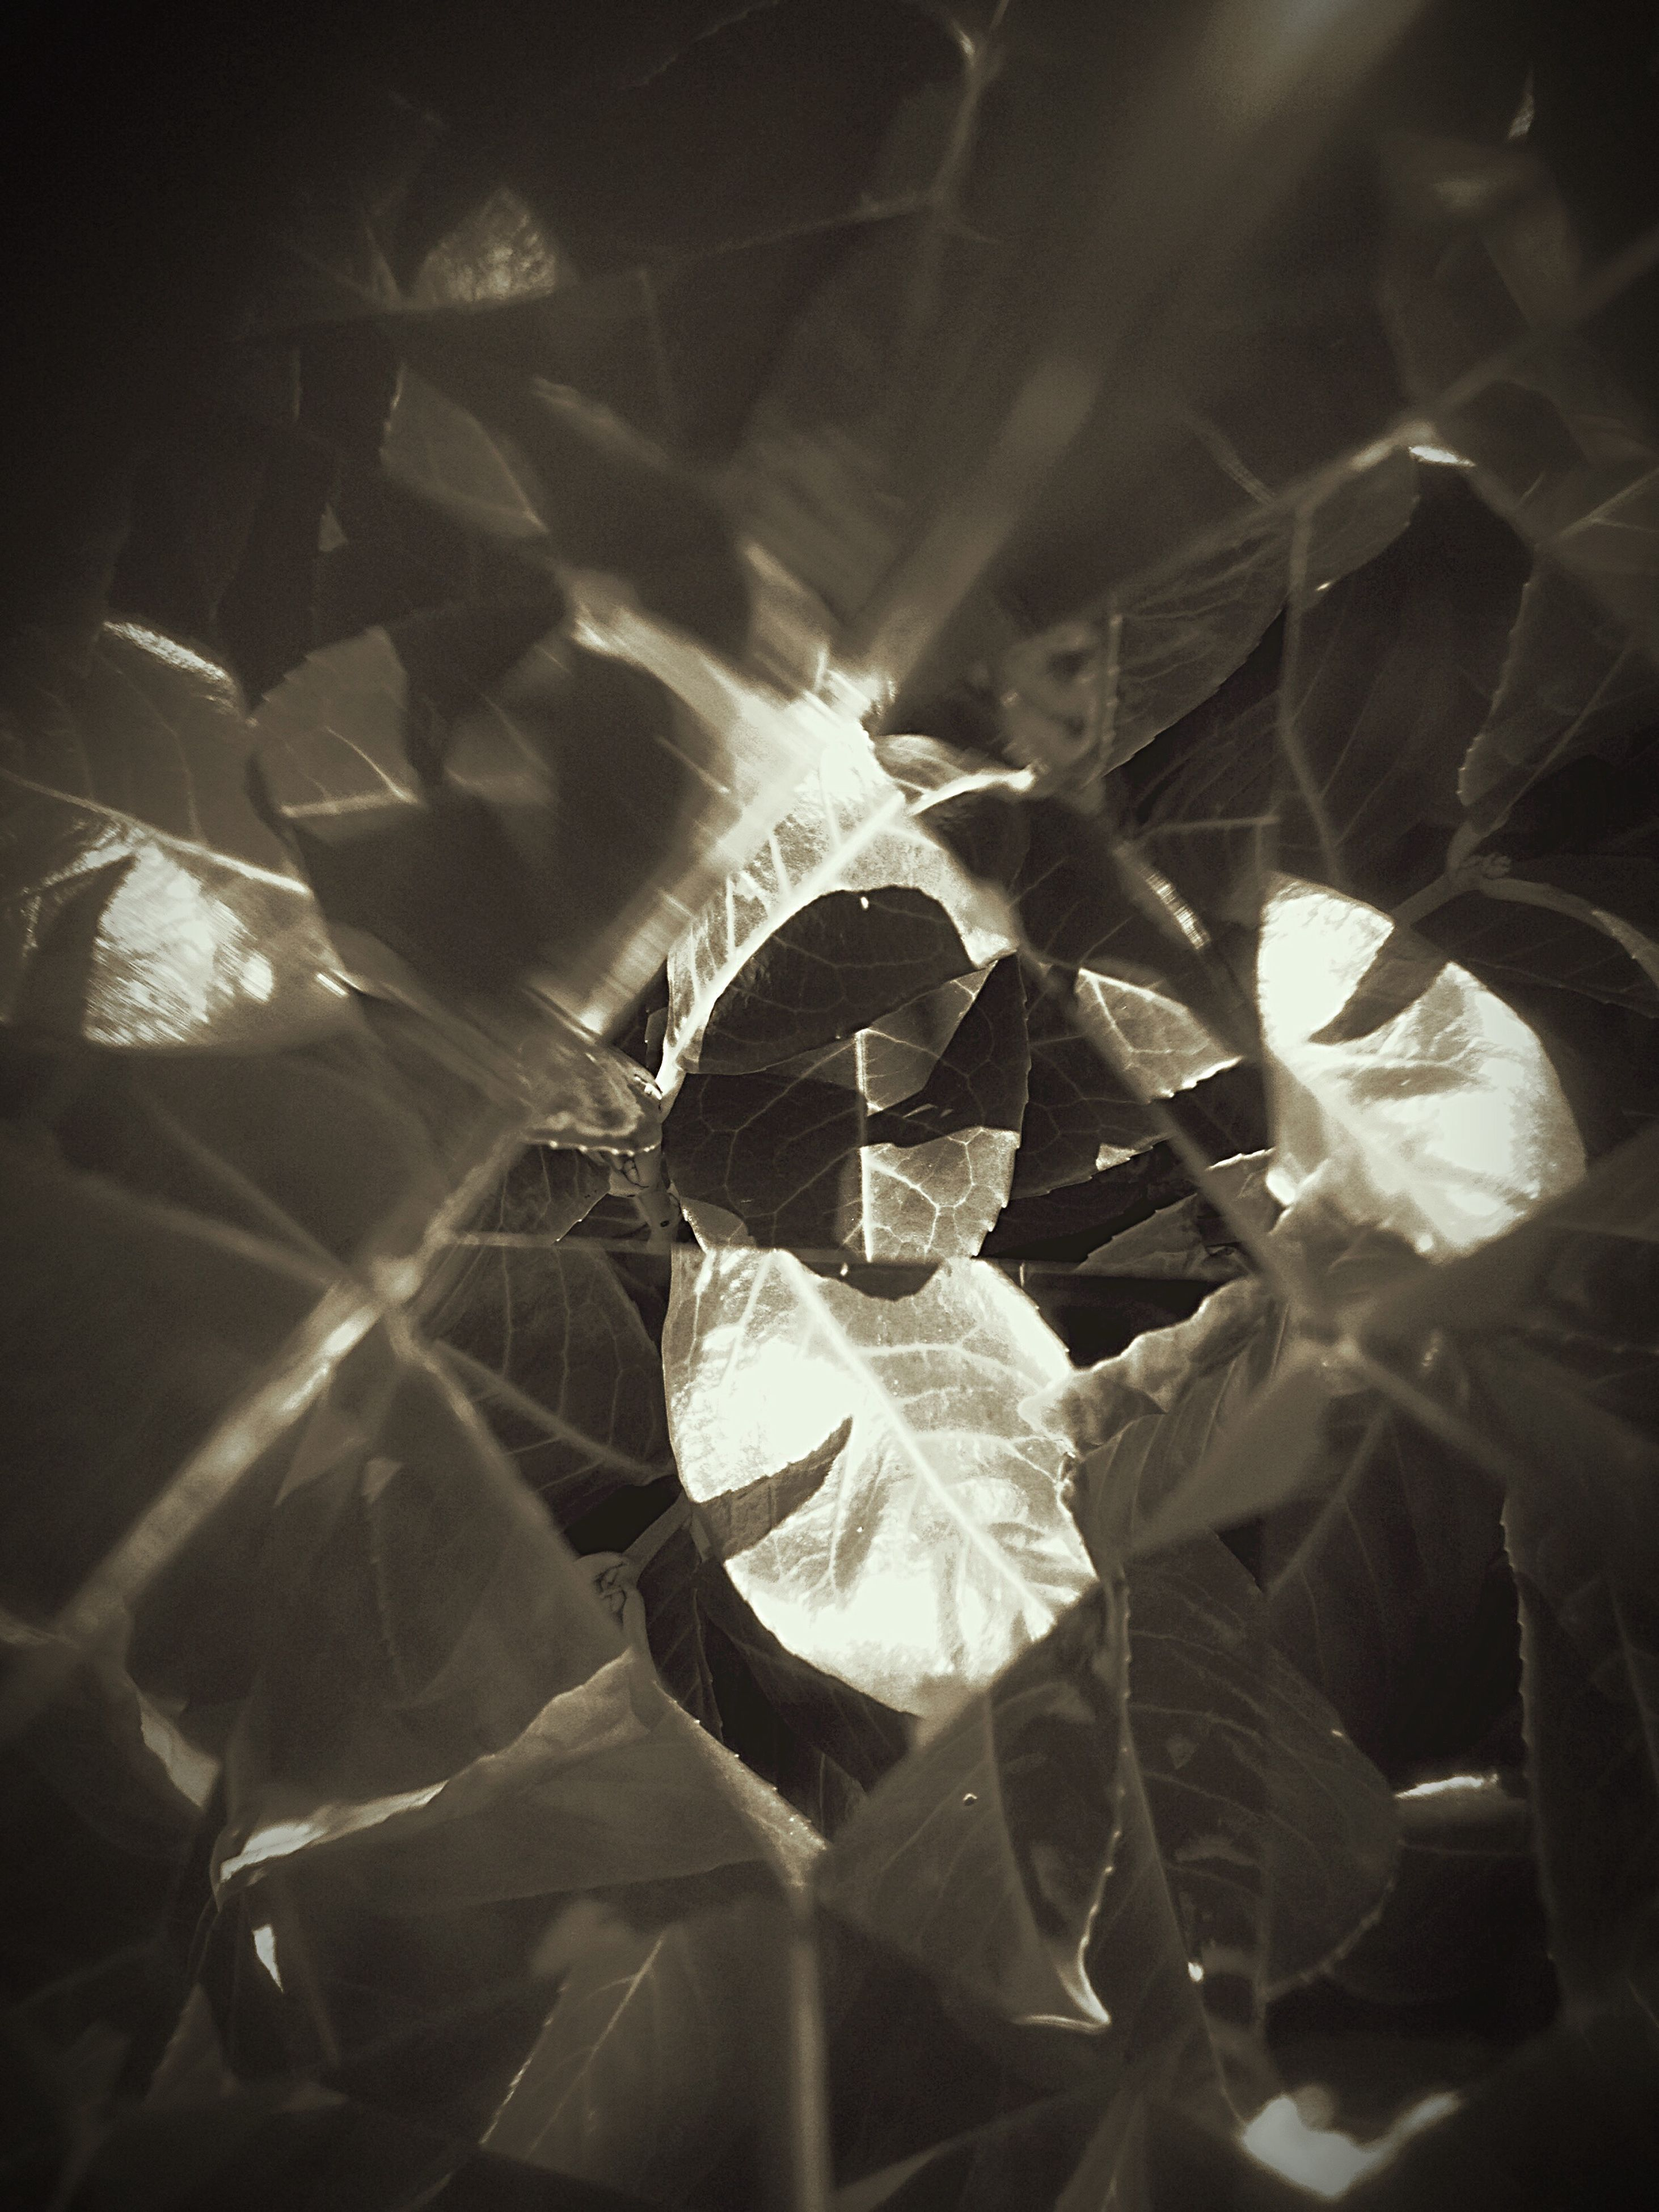 indoors, close-up, leaf, pattern, high angle view, fragility, night, plant, no people, nature, leaf vein, sunlight, dark, shape, full frame, design, backgrounds, growth, natural pattern